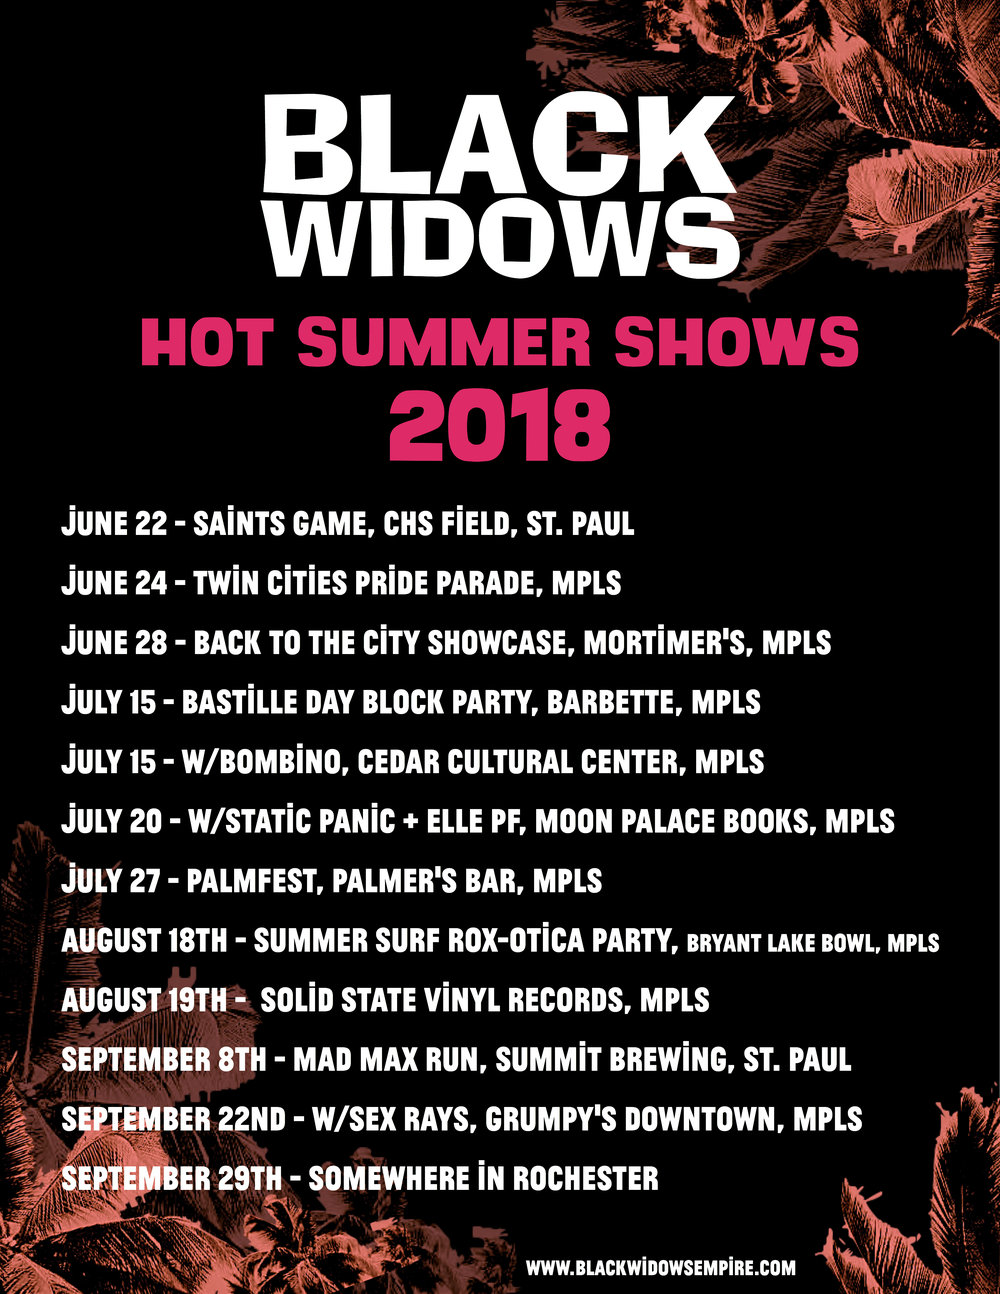 BW - summer shows 2018 - 7_6_18 edit.jpg